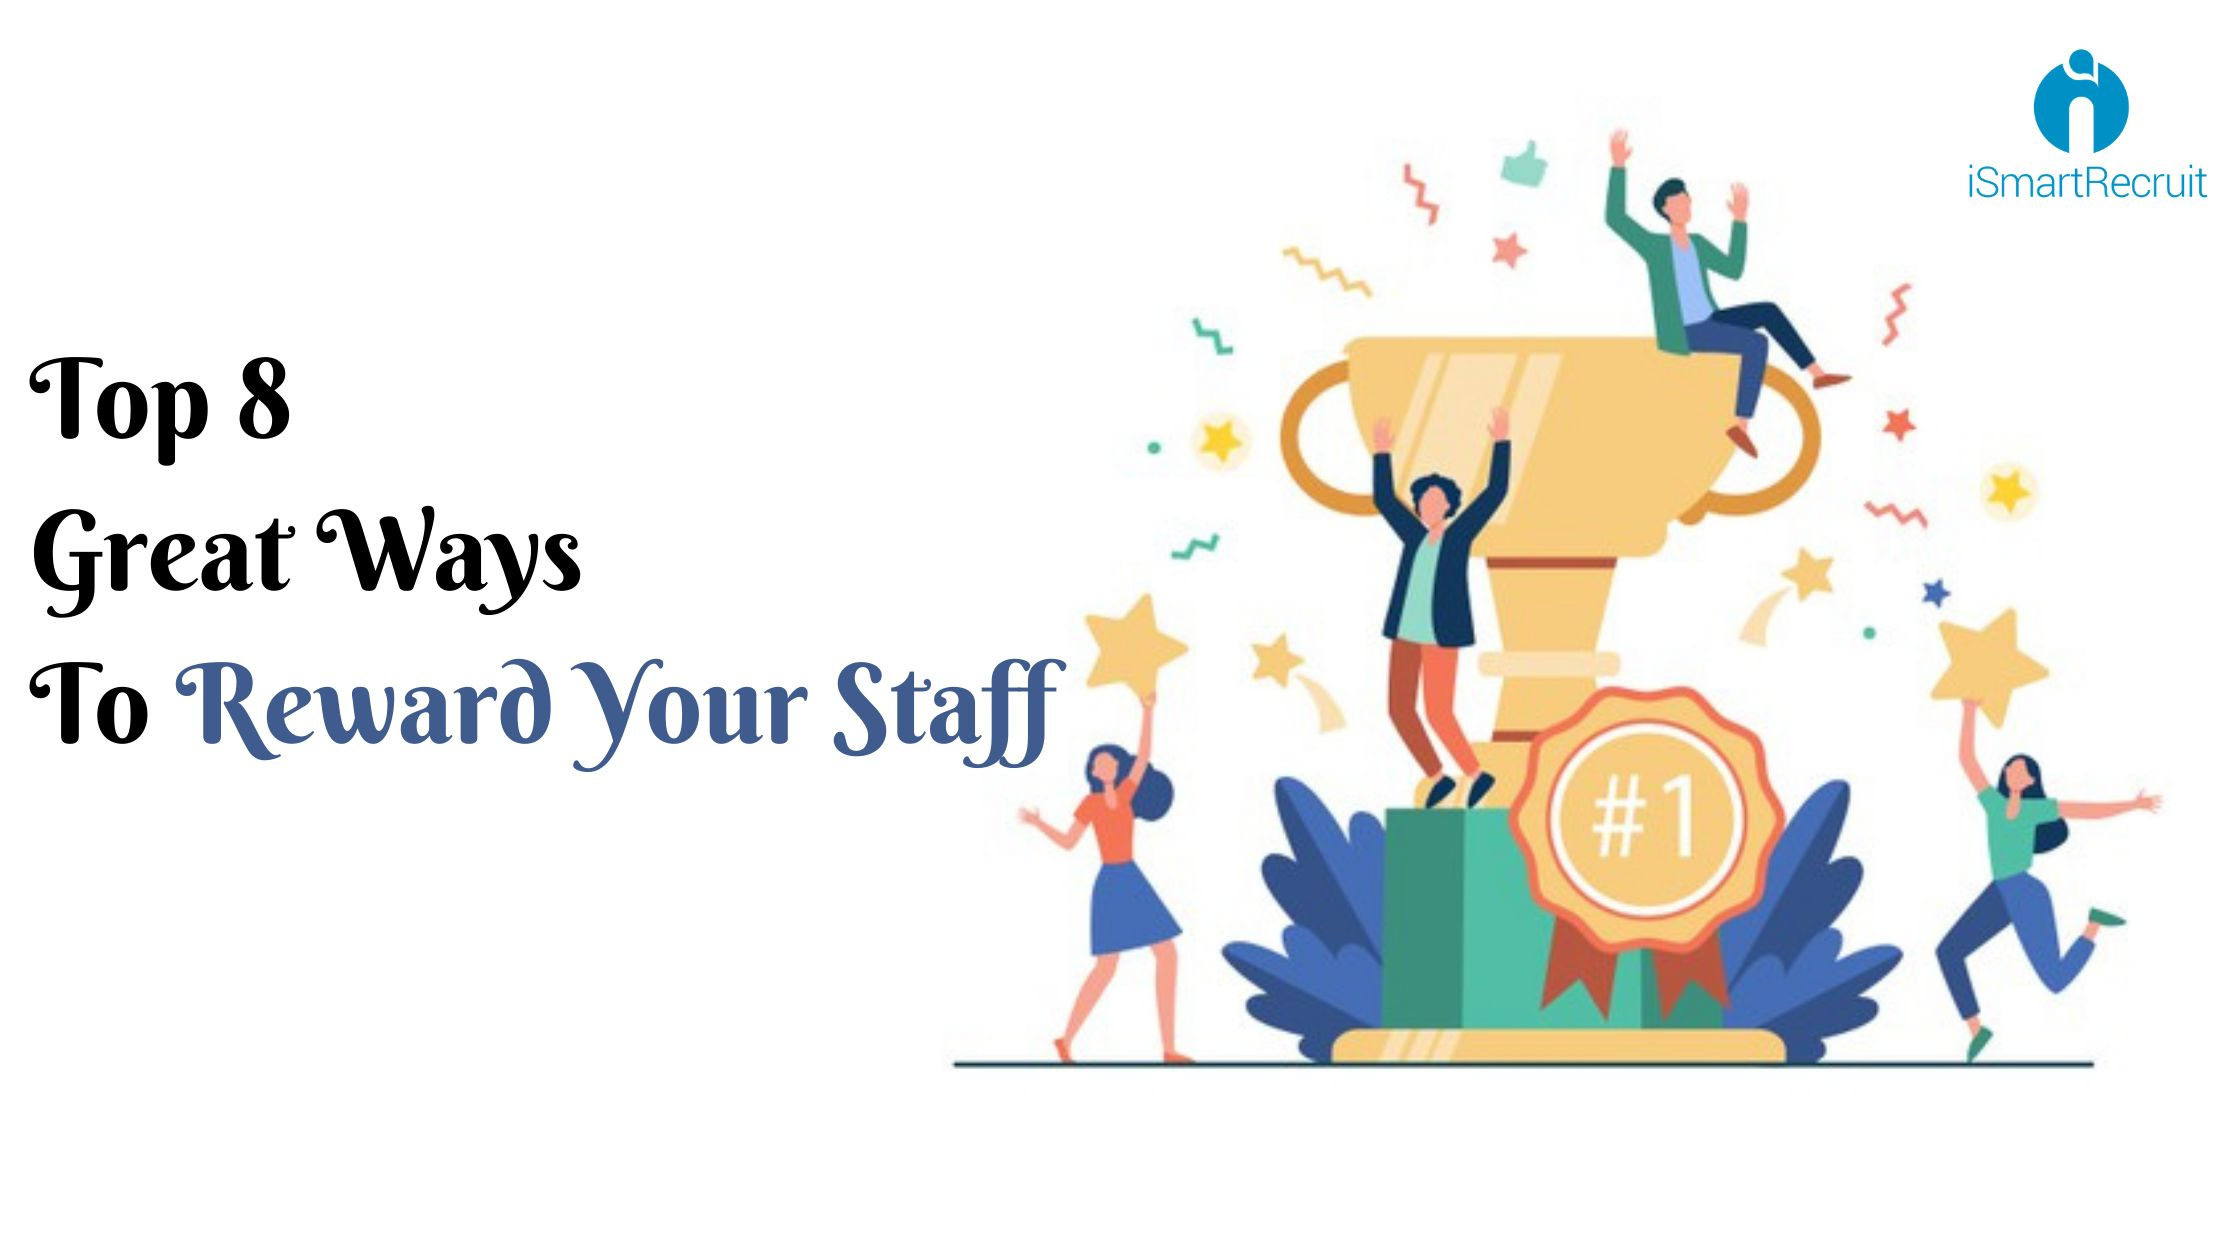 Top 8 Great Ways to Reward Your Employees